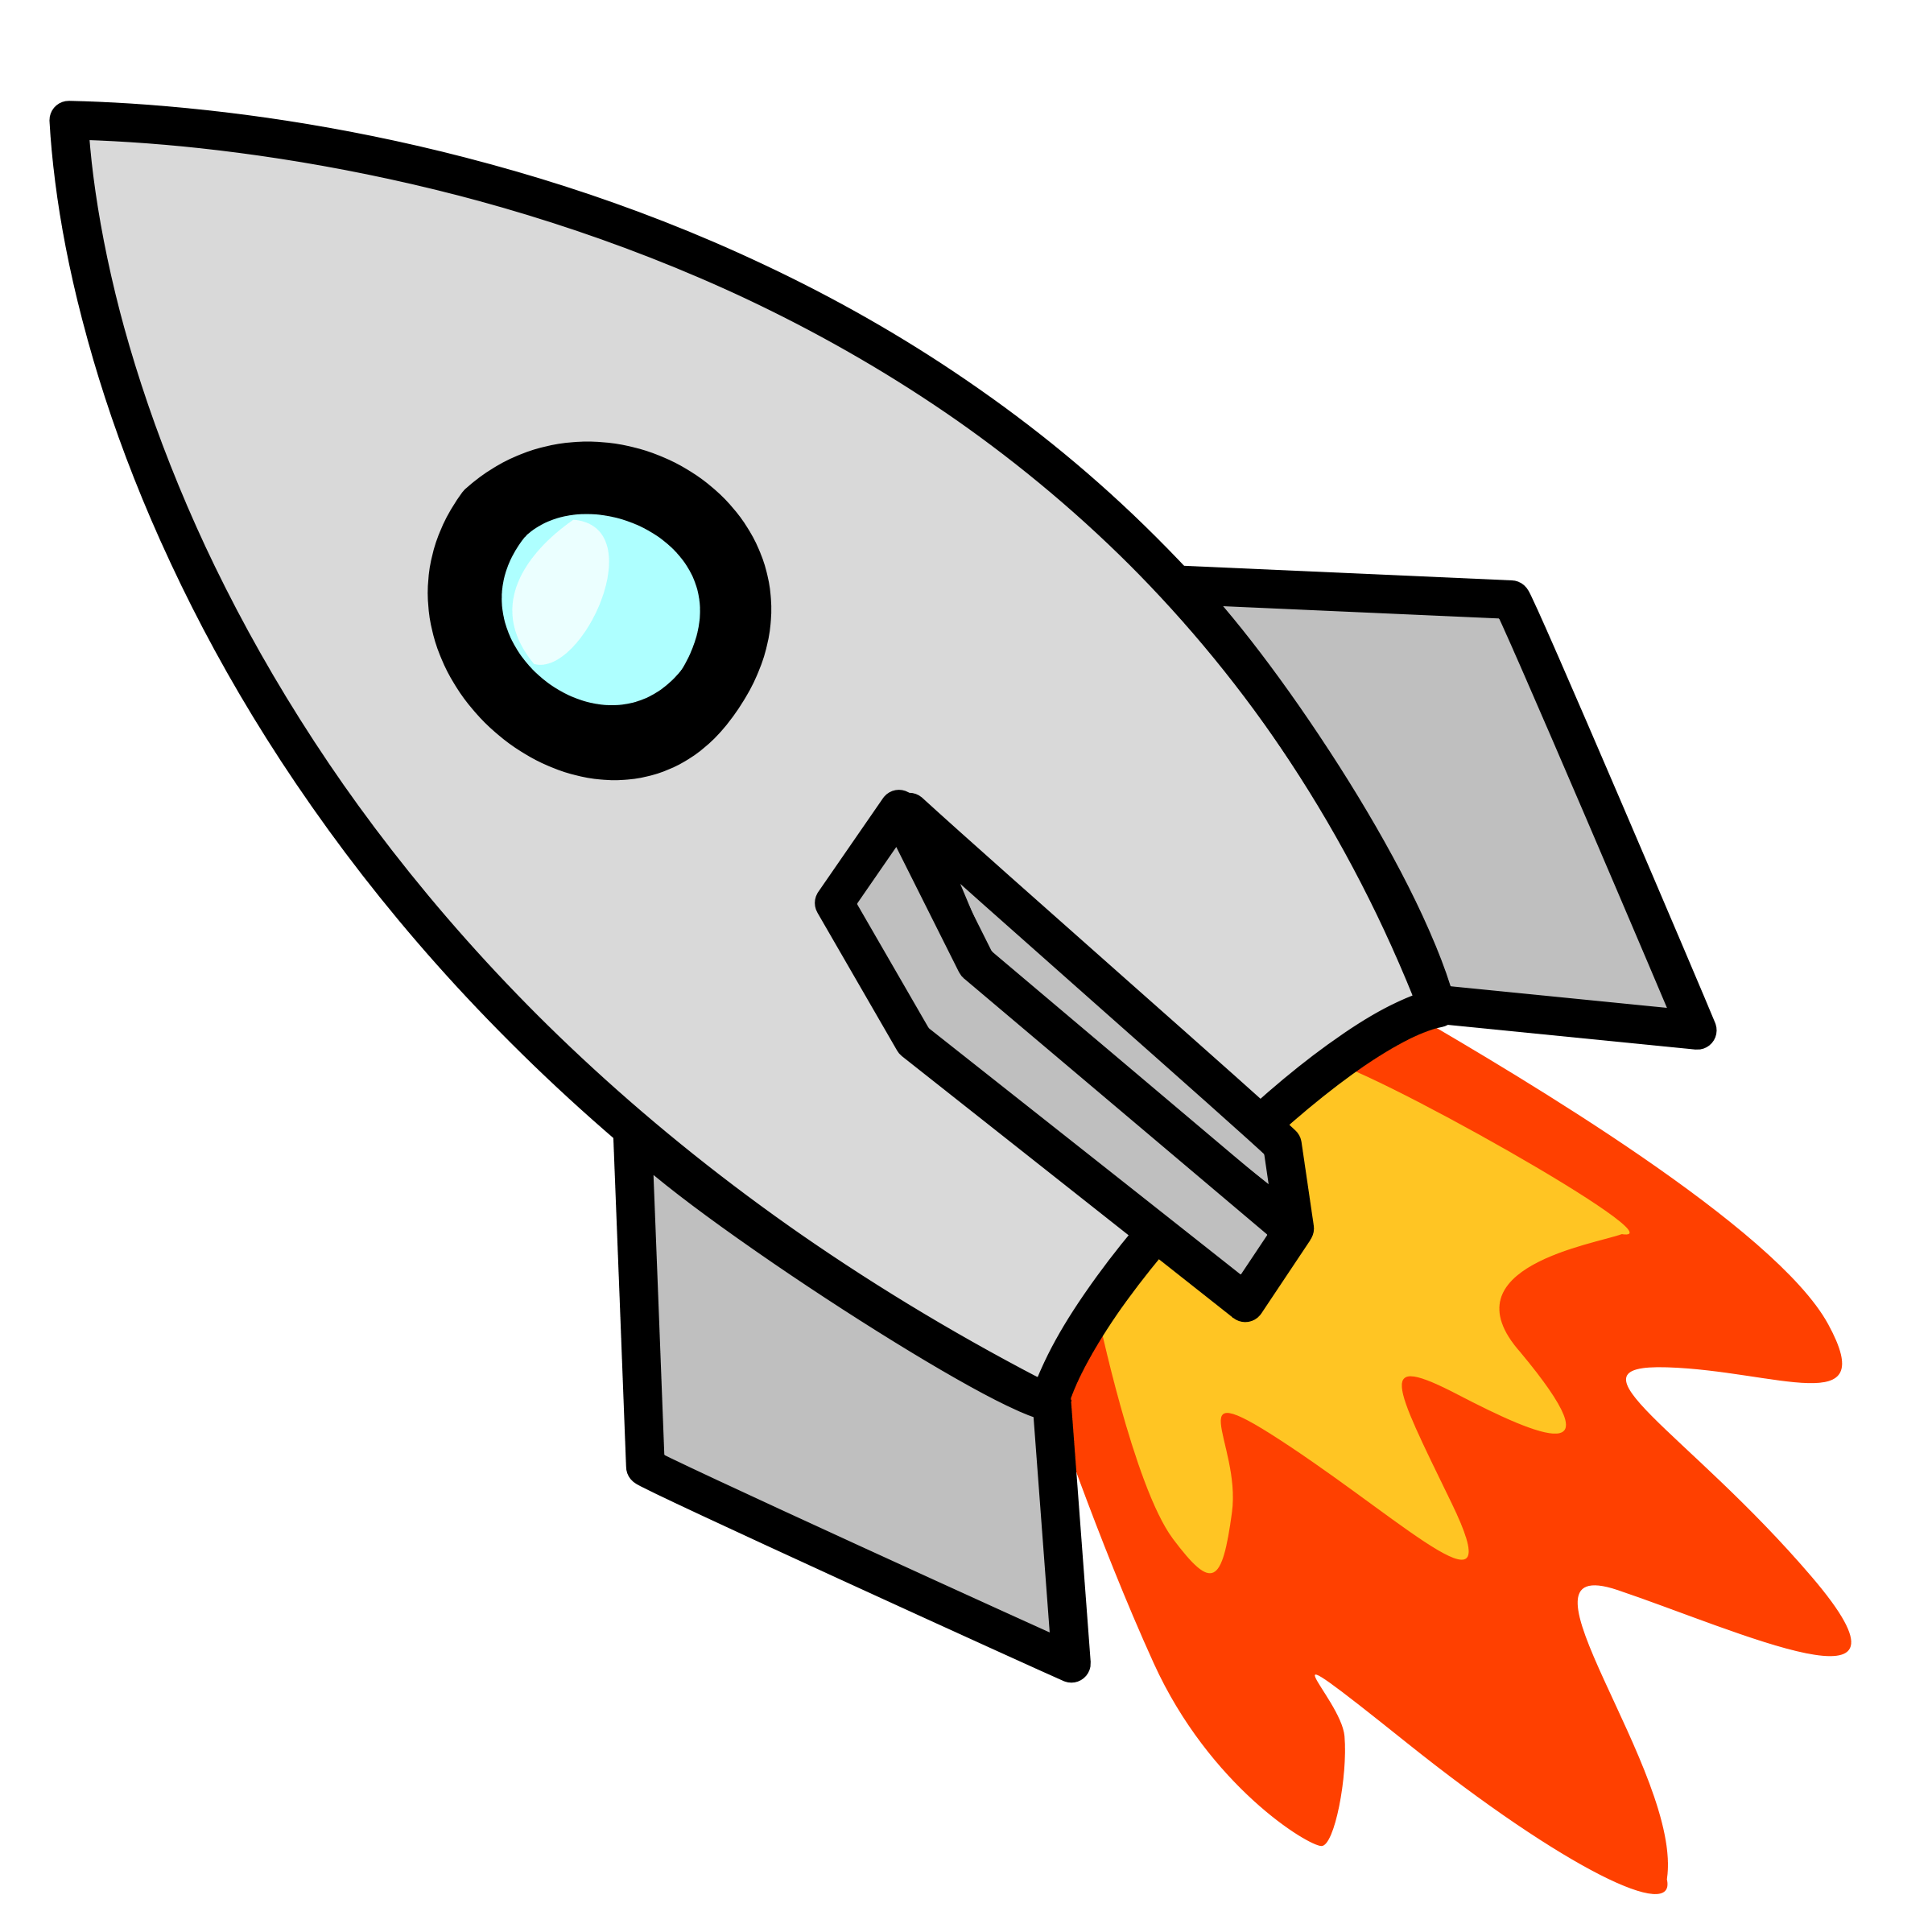 Images For Gt Cute Rocket Clipart Personal Space Camp